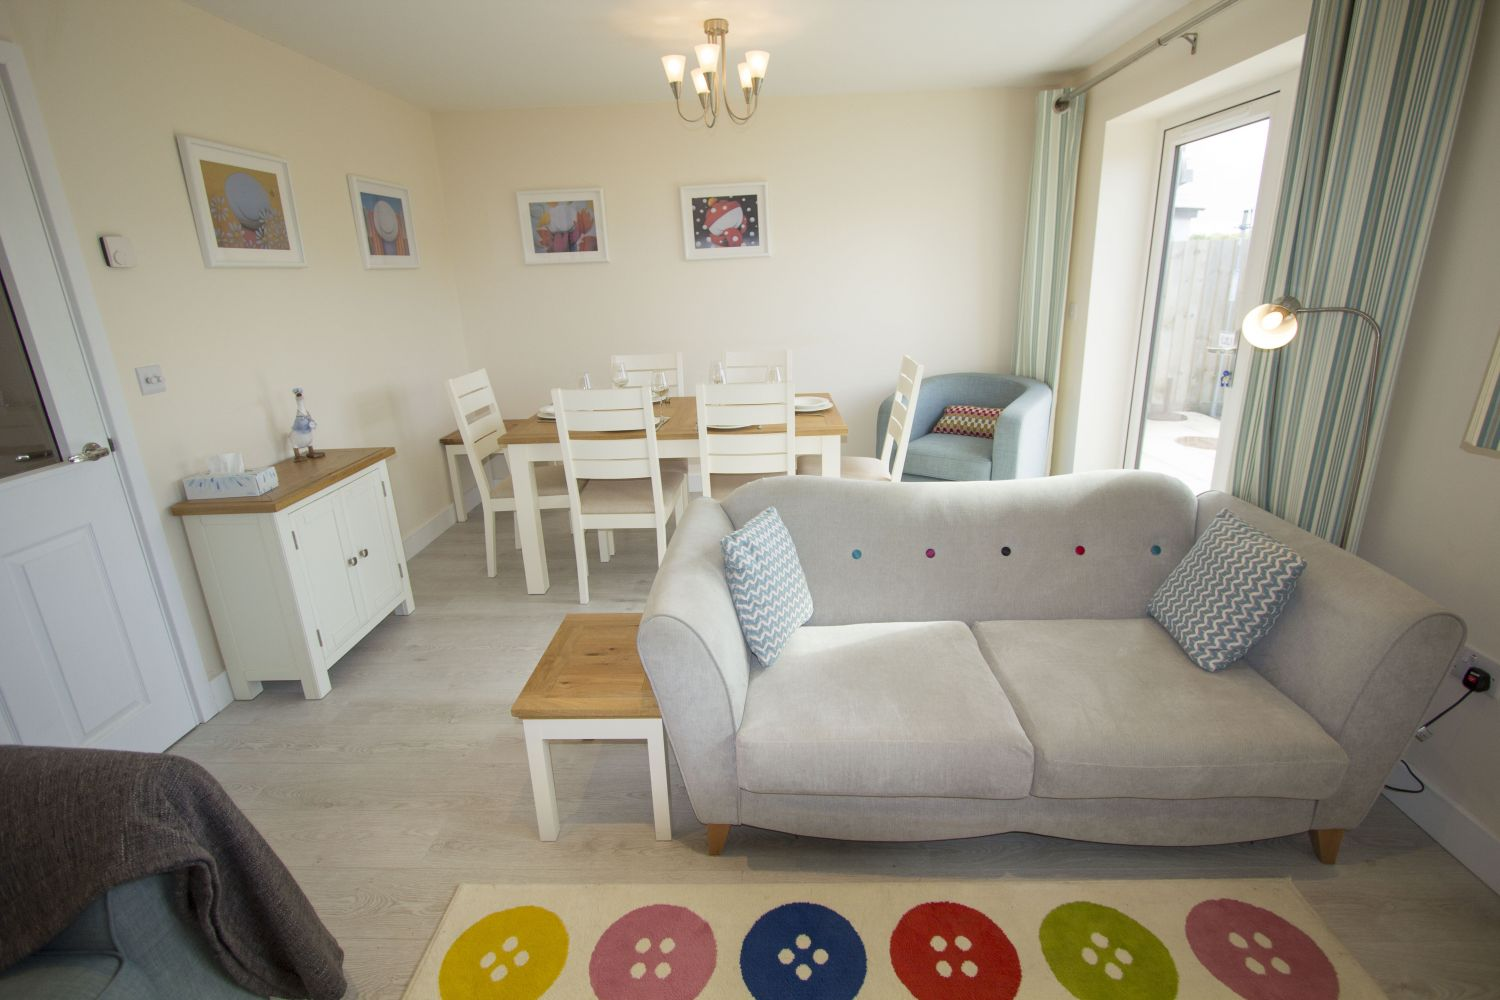 Seaside Days - Porthleven Holiday Cottages